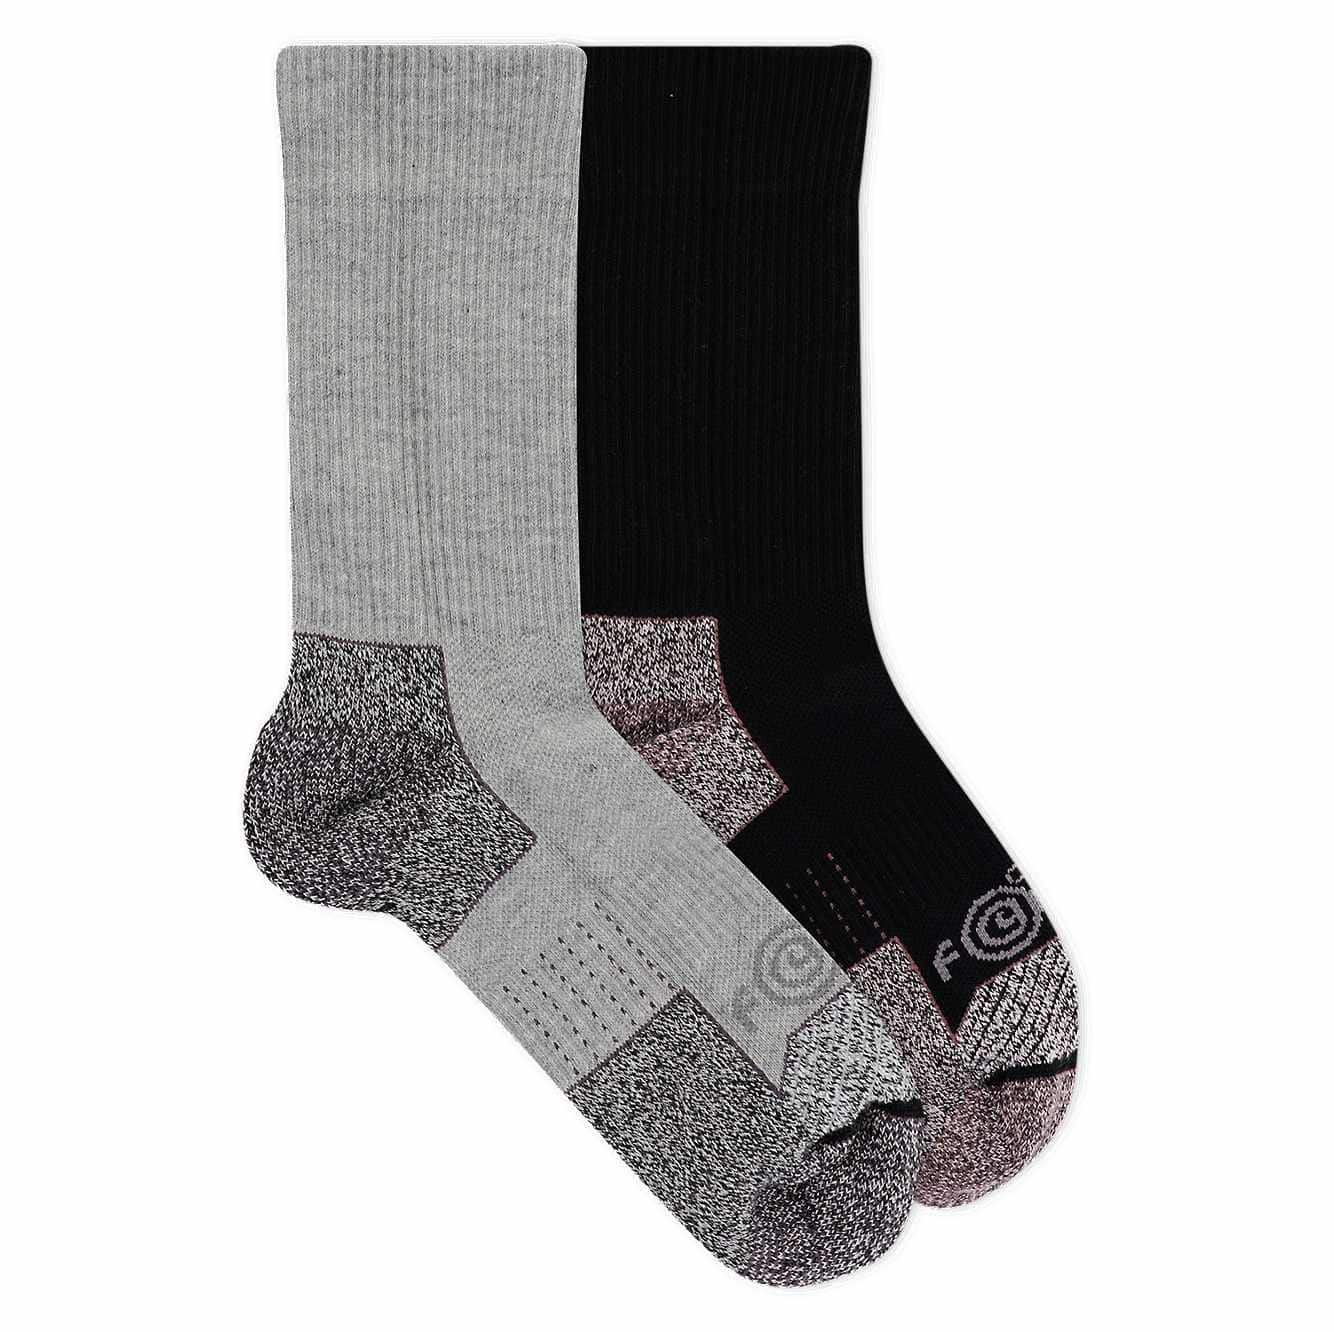 Picture of Force® Performance Steel Toe Crew Sock 2 Pack in Assorted